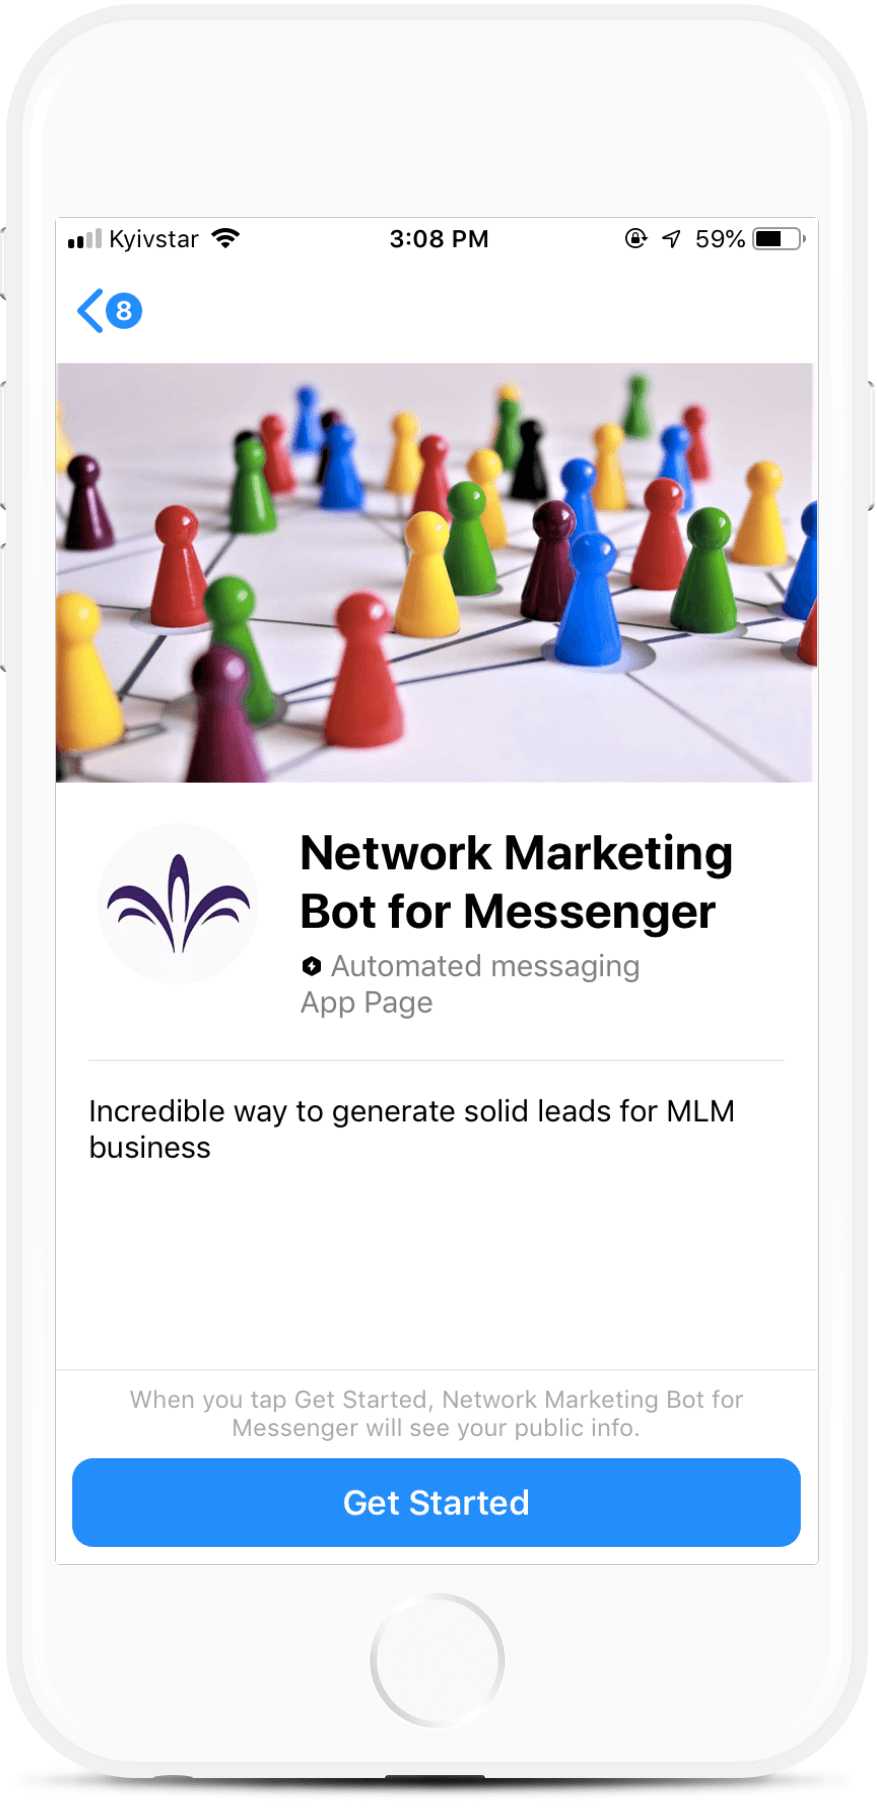 Network Marketing Bot for Messenger